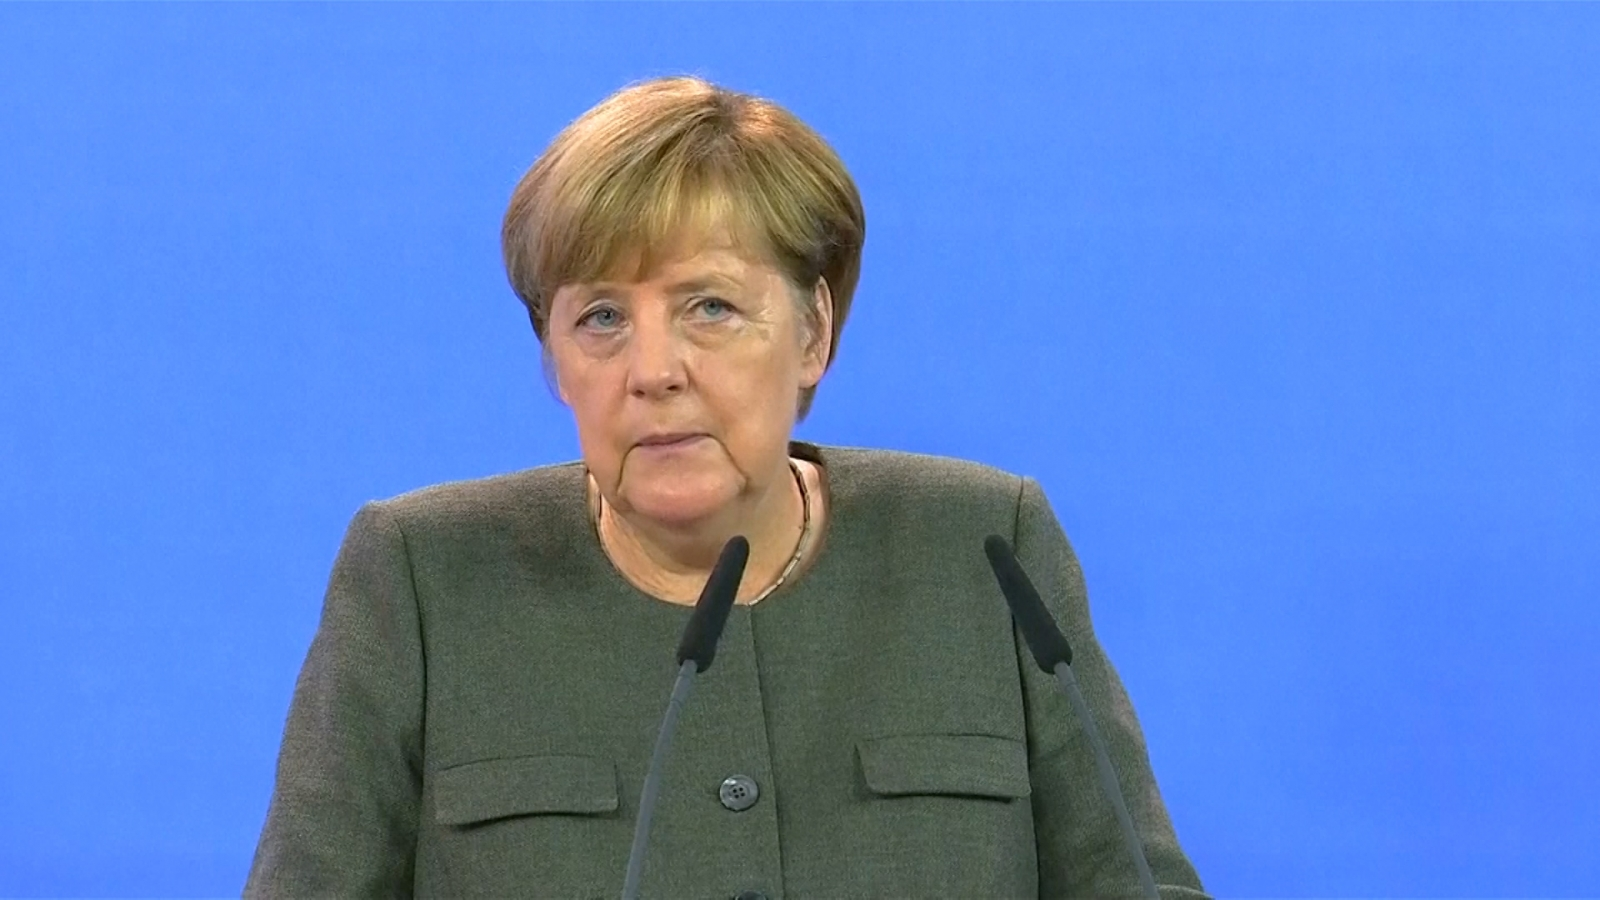 angela-merkel-says-terrorism-can-never-defeat-us-after-barcelona-attack